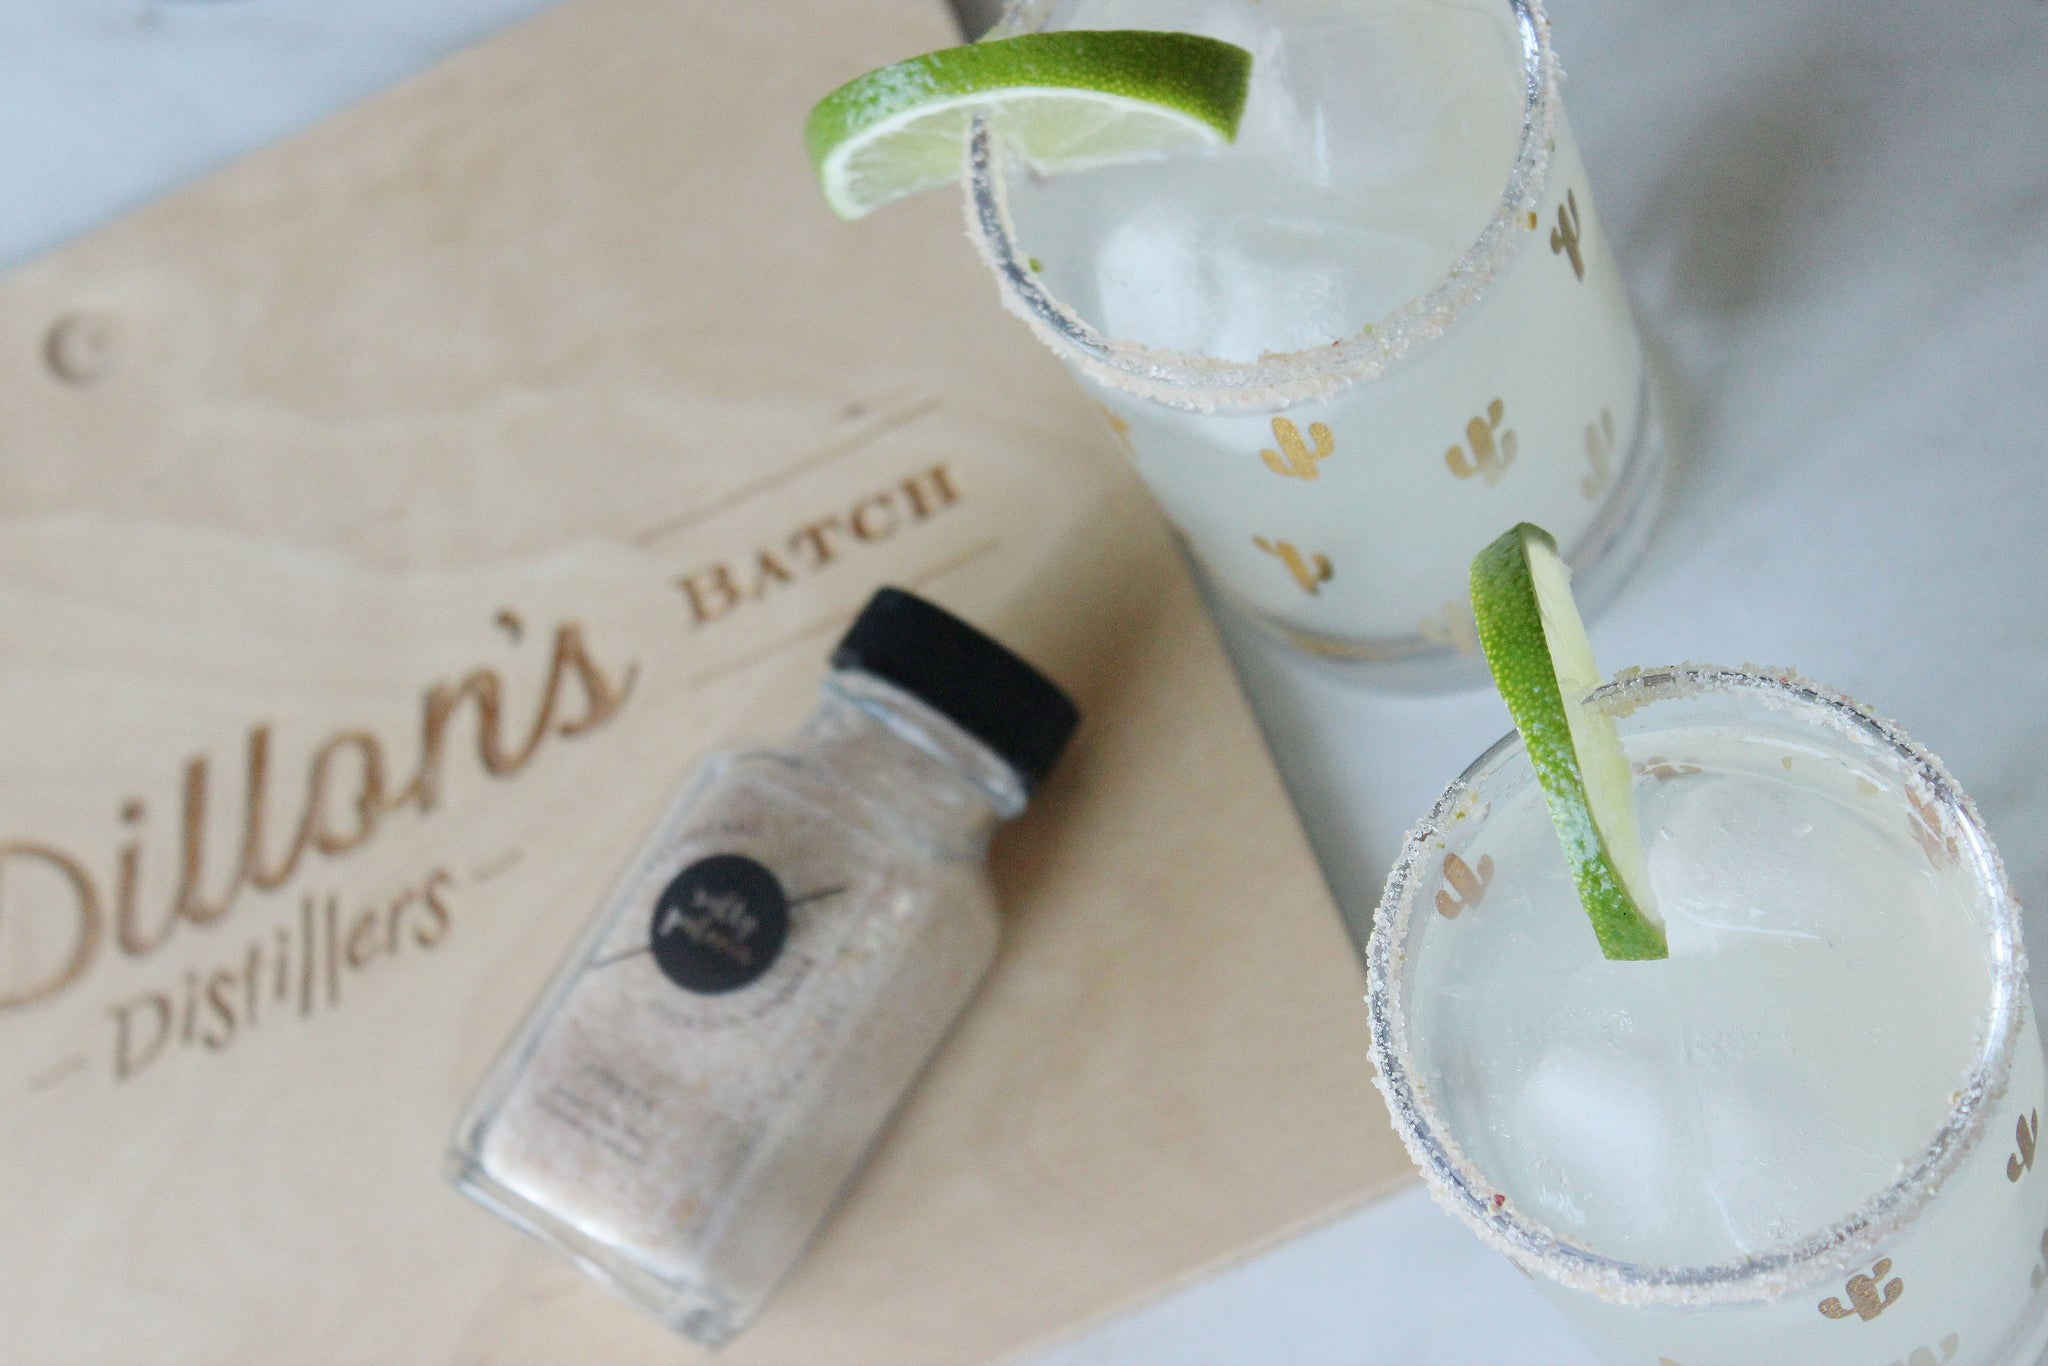 salty paloma dillon's white rye lime margarita cocktail recipe